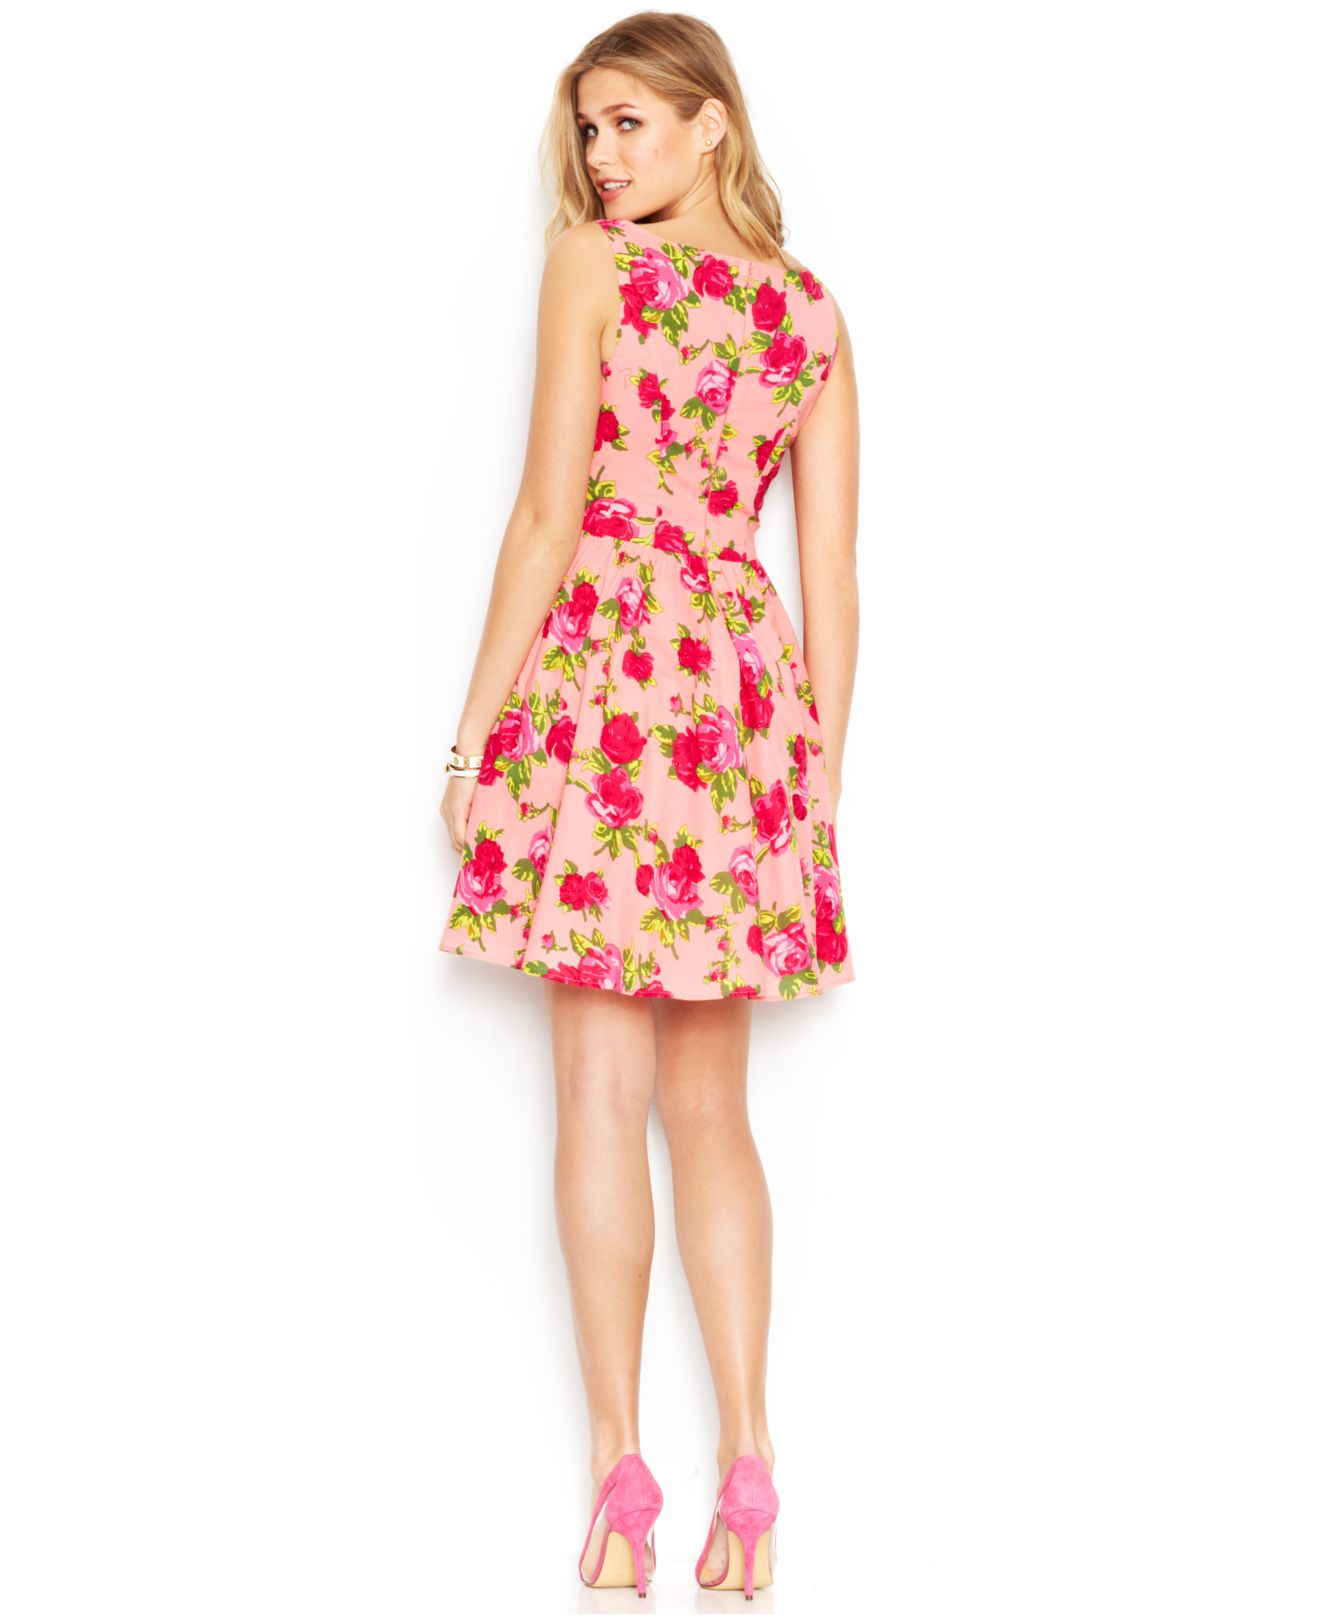 Lyst Betsey Johnson Sleeveless Rose Print Dress In Pink